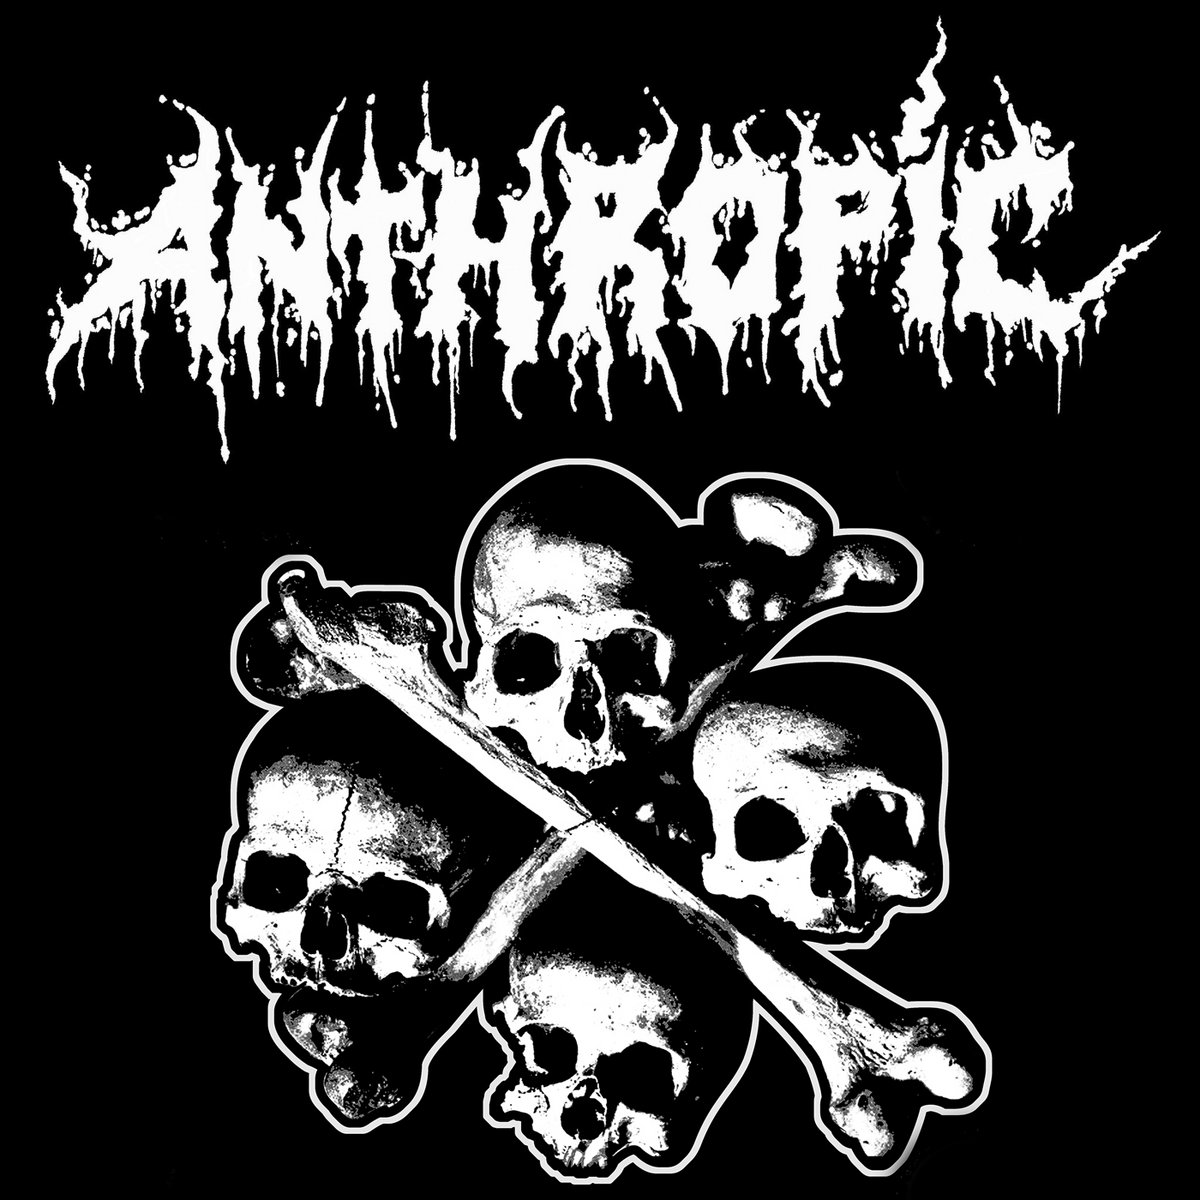 Anthropic - Anthropic